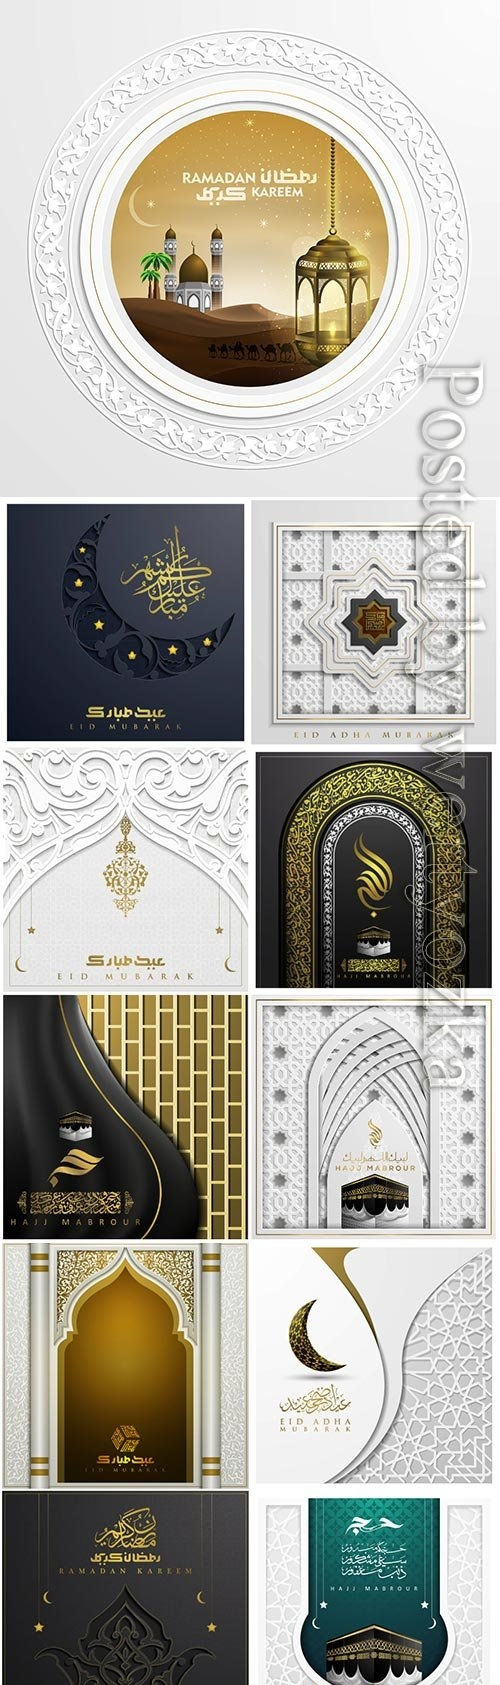 Eid mubarak greeting card, Ramadan kareem, Hajj mabrour,  islamic pattern vector design vol 2